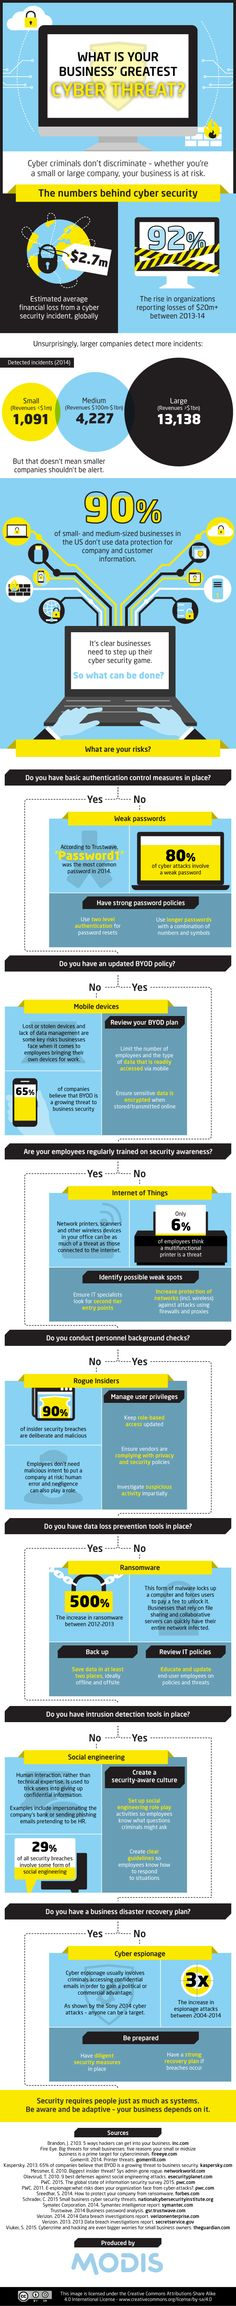 What is Your Business Greatest Cyber Threat? #infographic #Business #CyberThreat